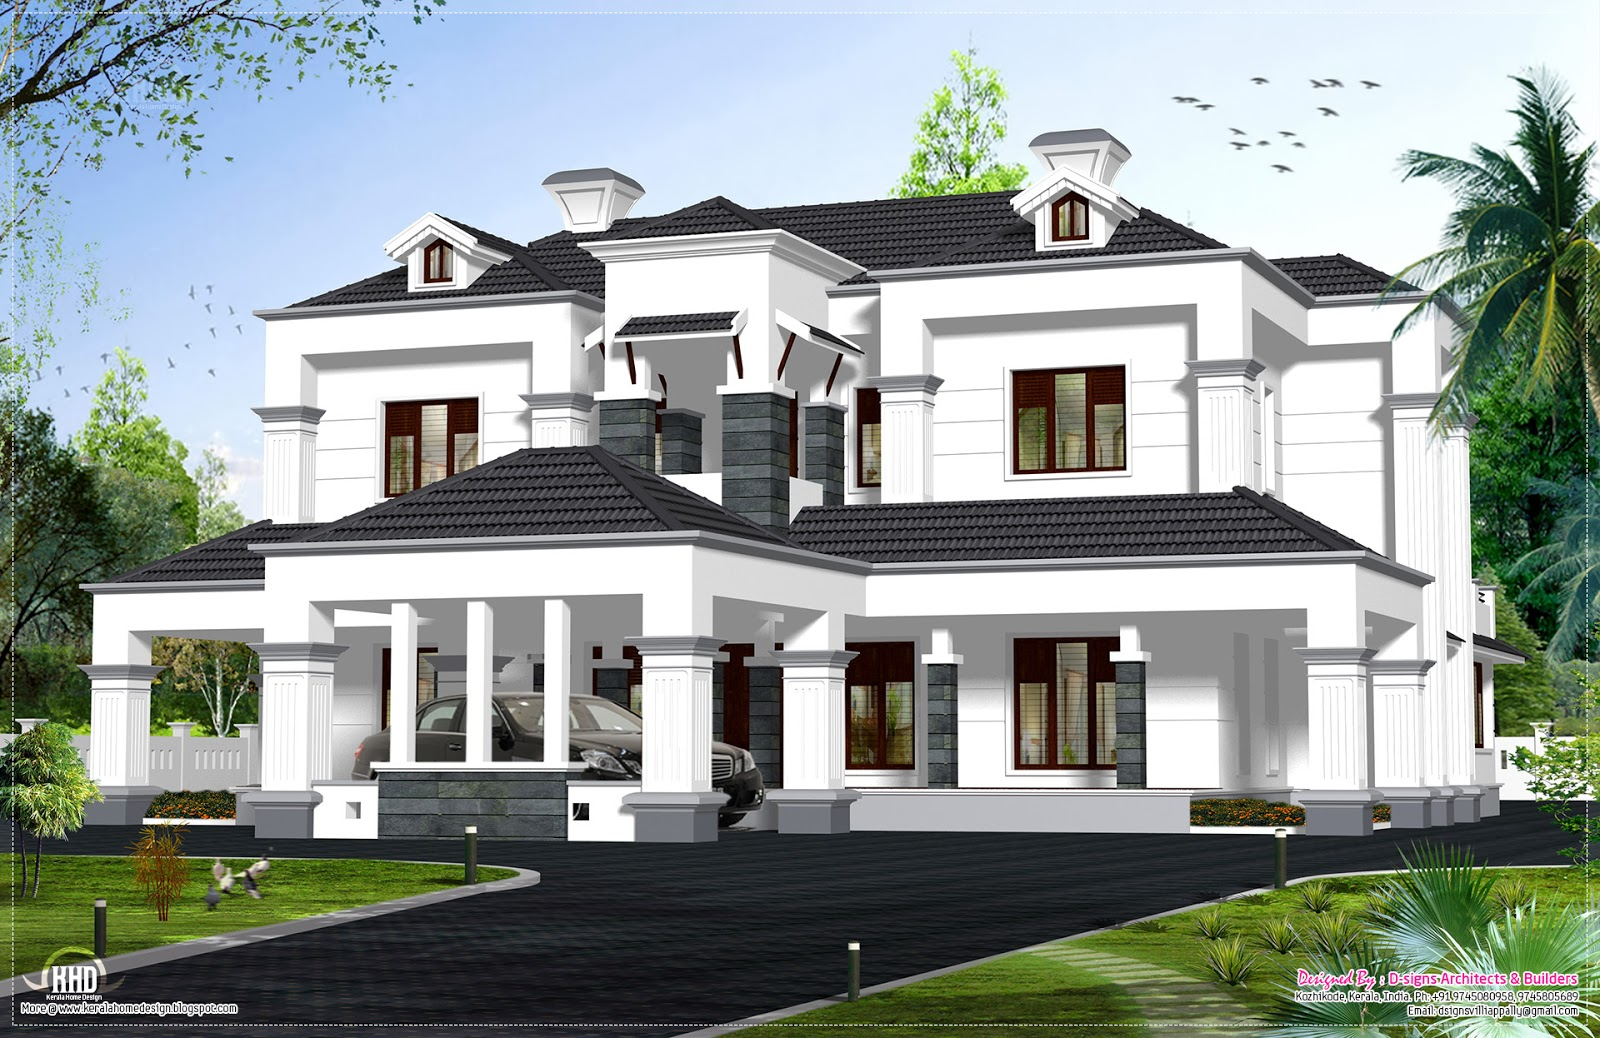 Victorian model house exterior kerala home design and for House plans kerala model photos